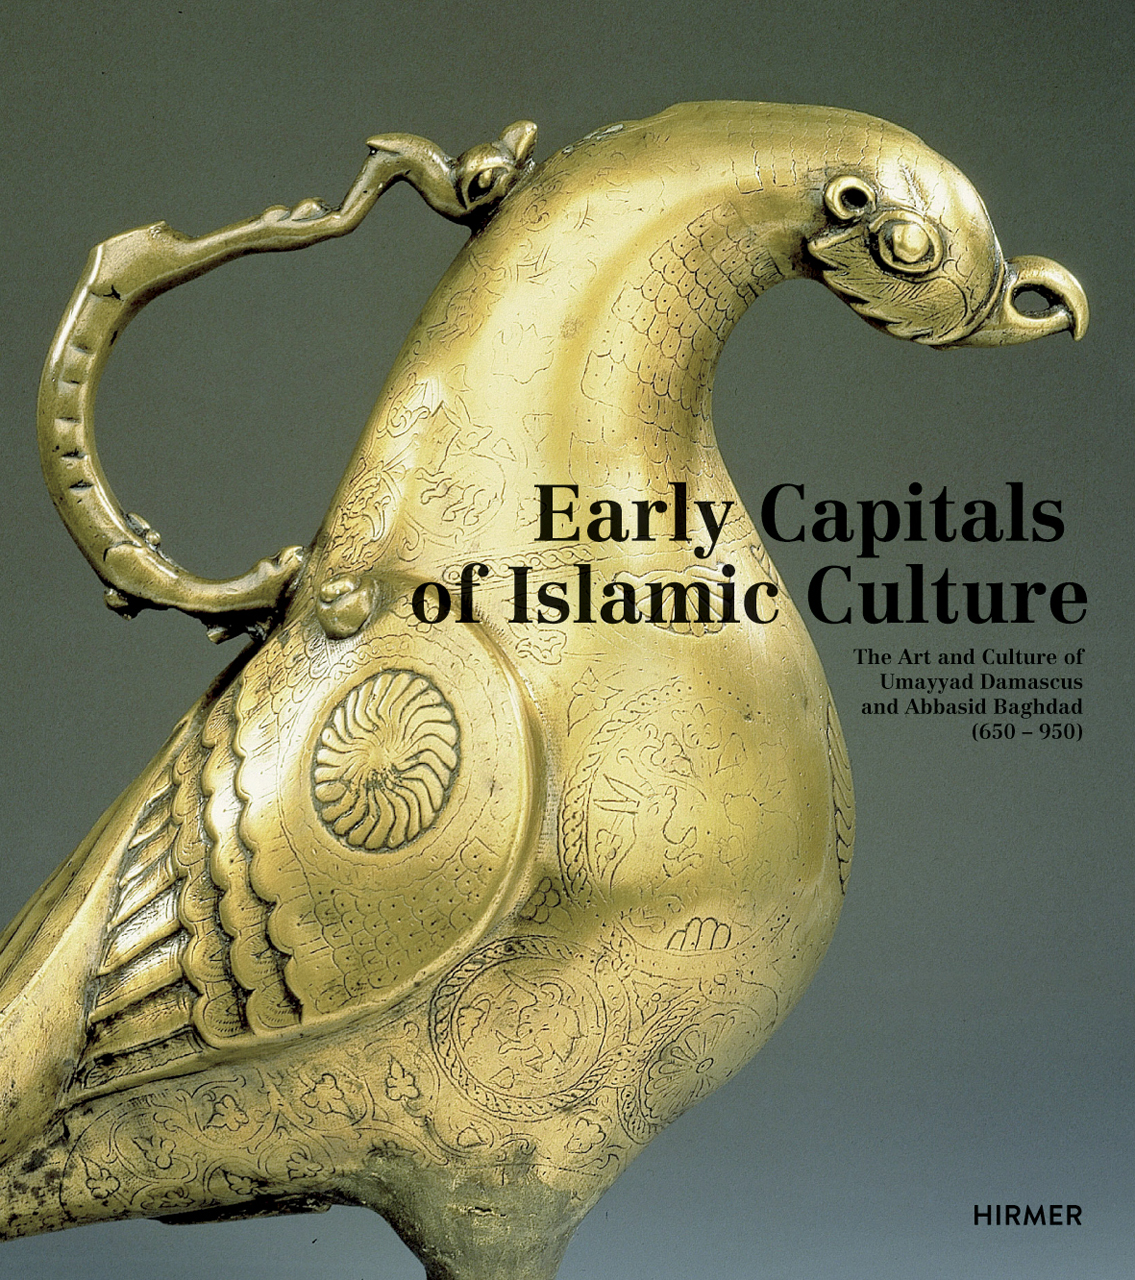 Early Capitals of Islamic Culture: The Art and Culture of Umayyad Damascus and Abbasid Baghdad (650 - 950)